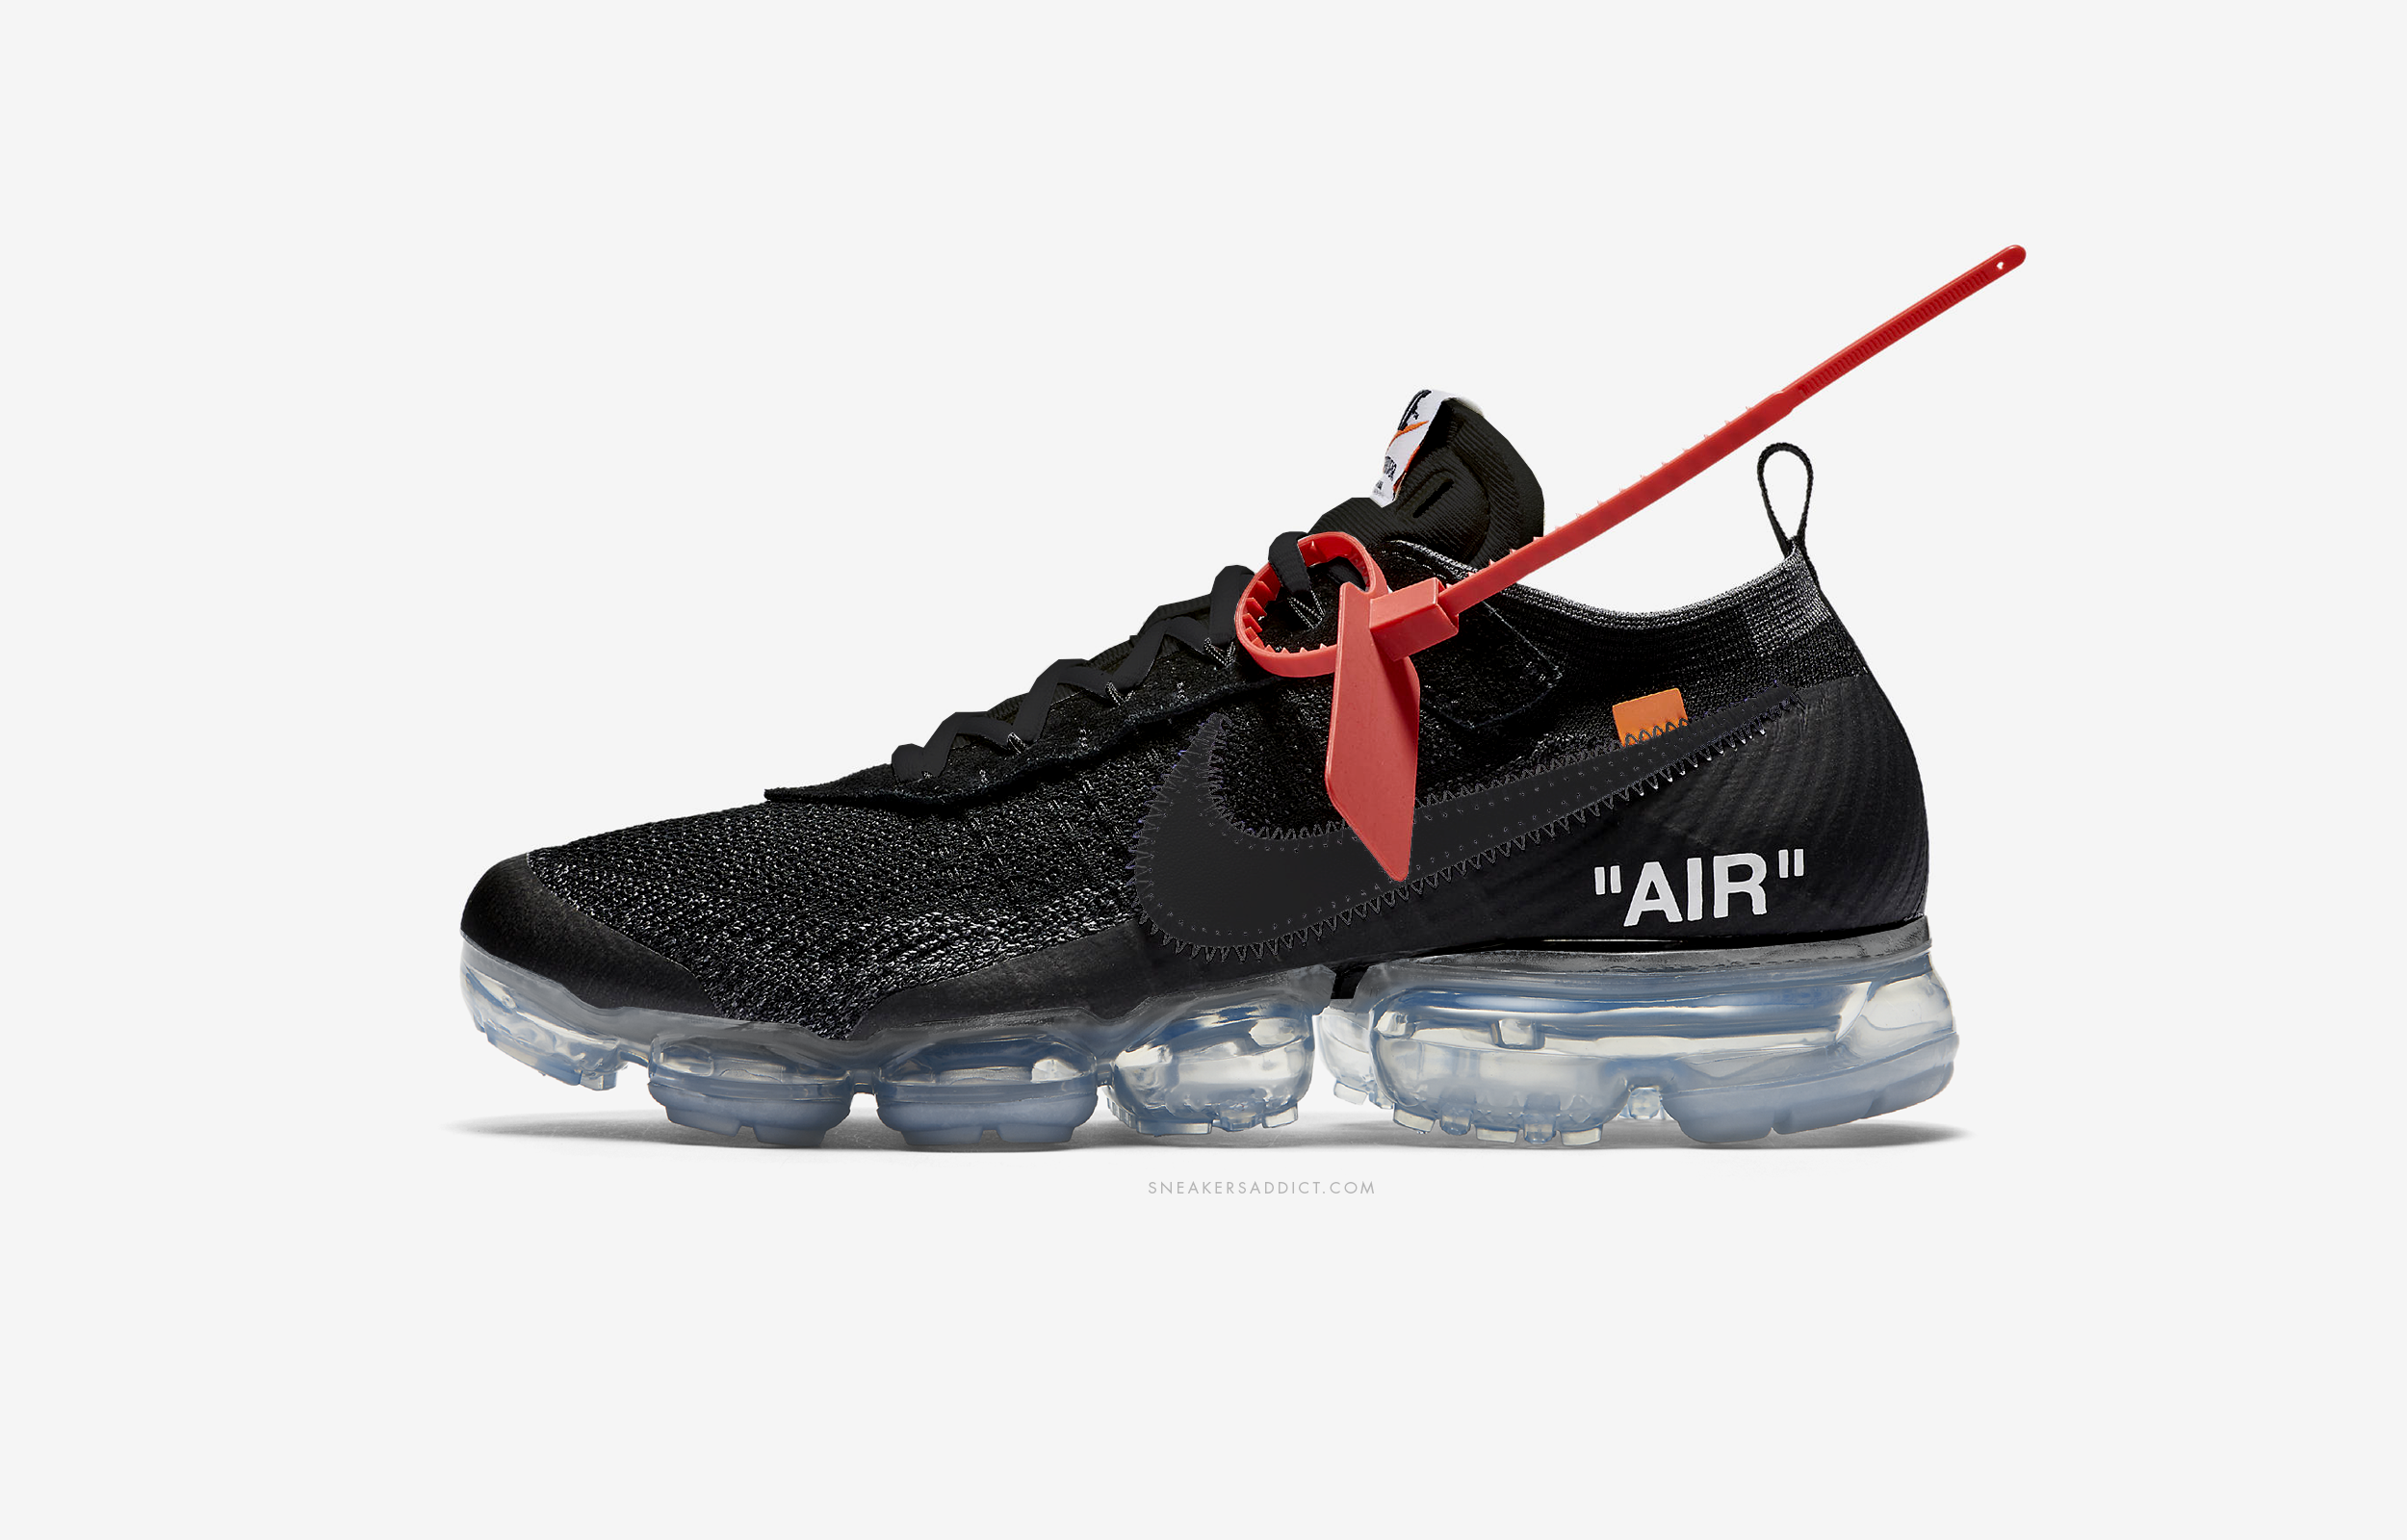 a23eb44a2d20 Nike Air Vapormax Off-White 2018 | Nike Air Max | Nike shoes, Shoes ...